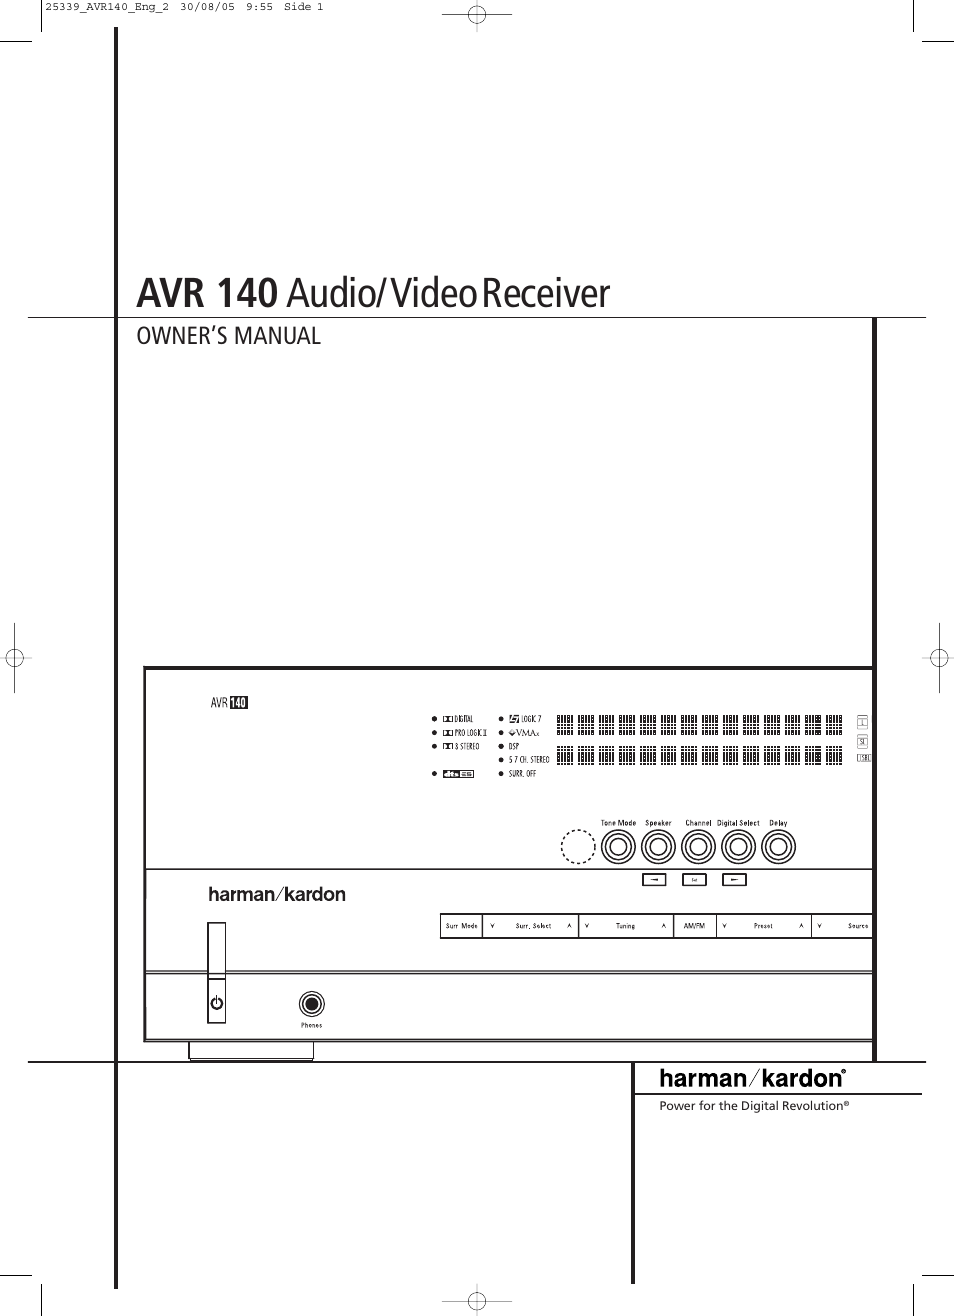 JBL AVR 140 User Manual | 46 pages